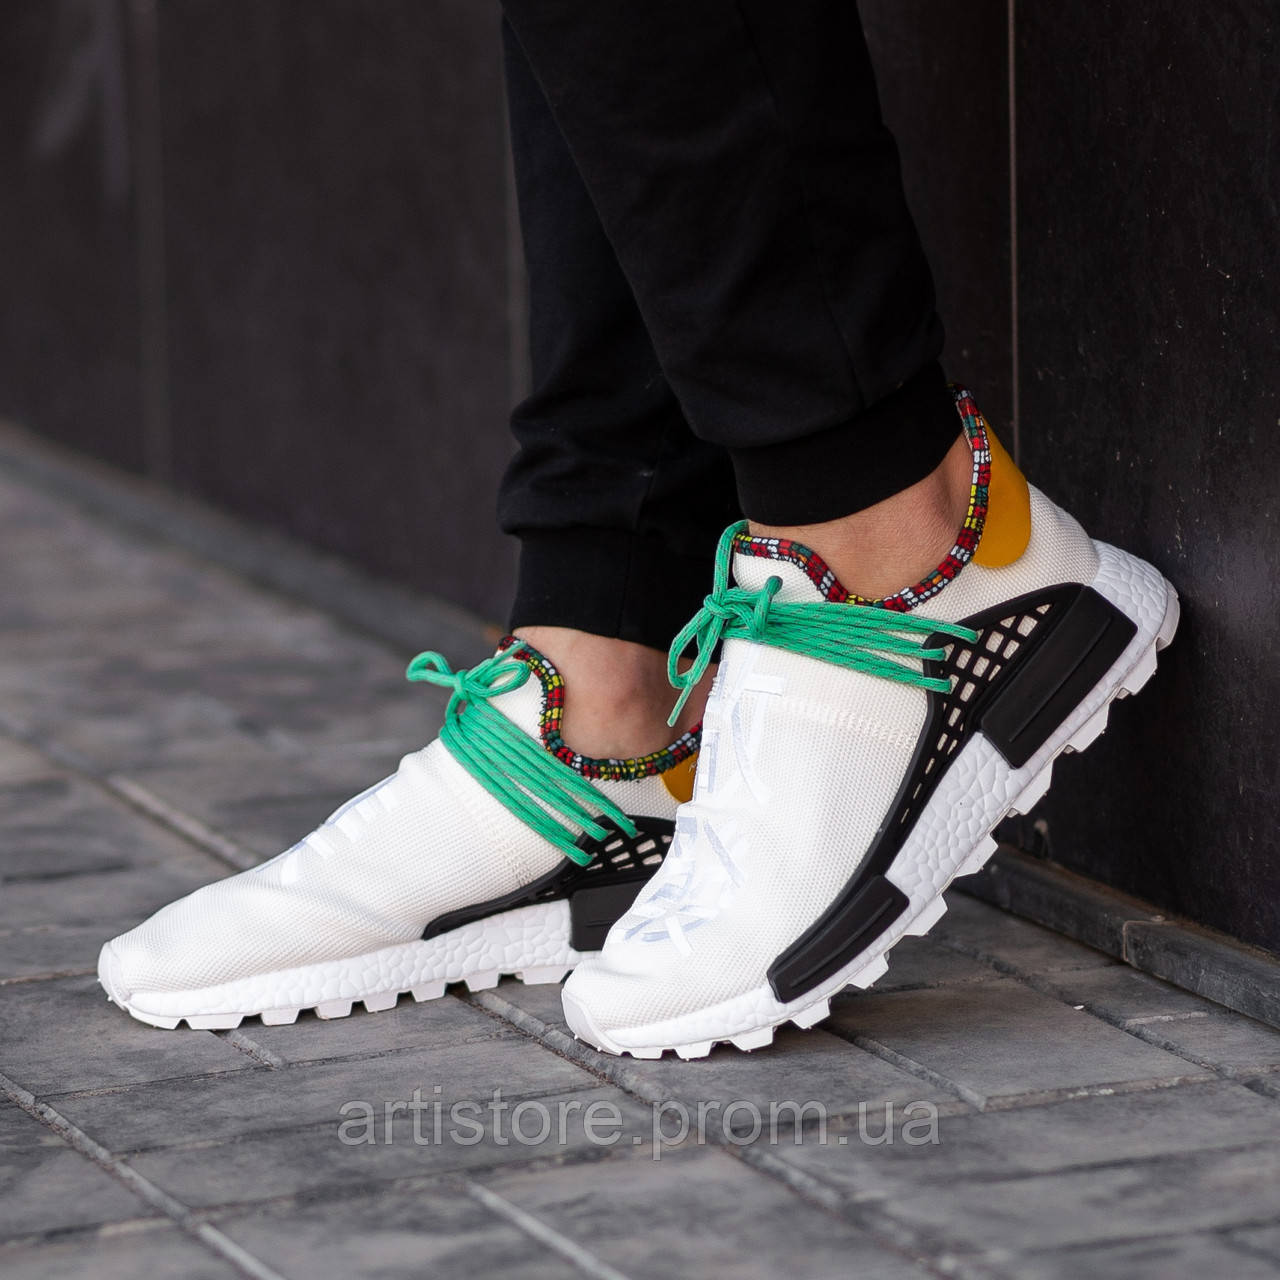 size 40 cf759 f9af9 Кроссовки Adidas x Pharell Williams NMD Human Race White with green and  black Белые с зеленым и черным